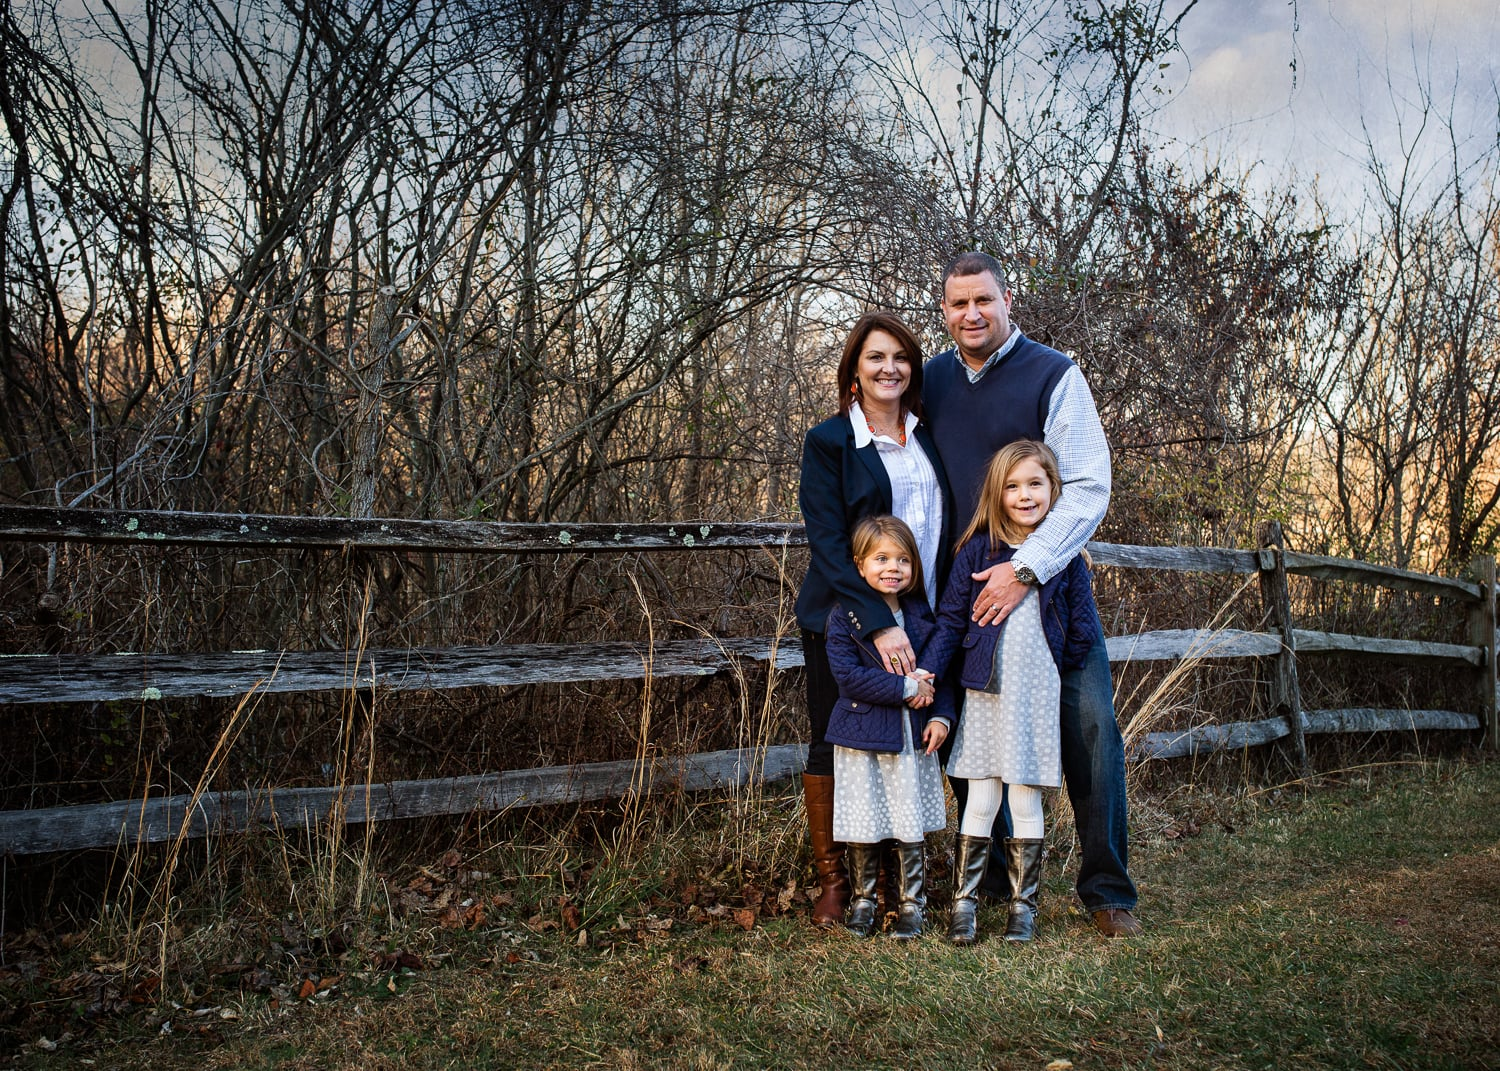 Photograph of mother, father and two girls by fence in Hunt Valley, MD